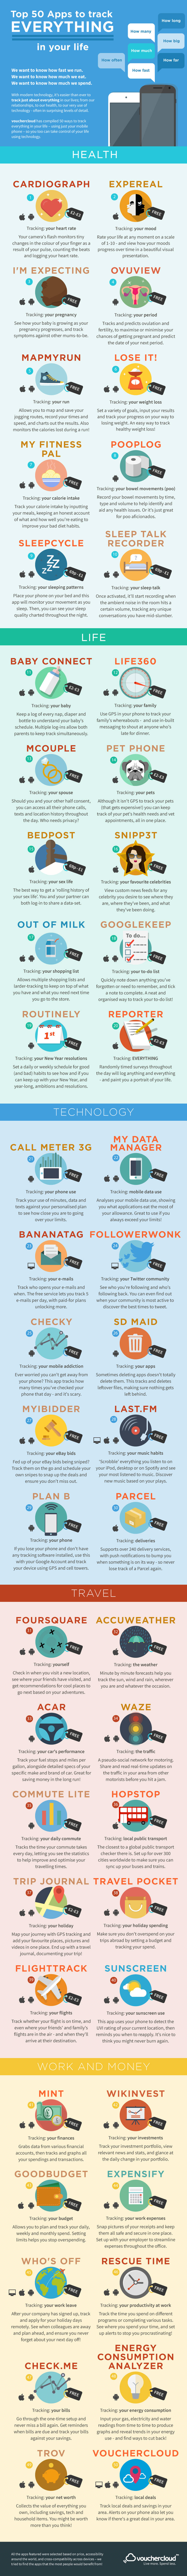 Great infographic that highlights 50 Apps that Track Everything in life